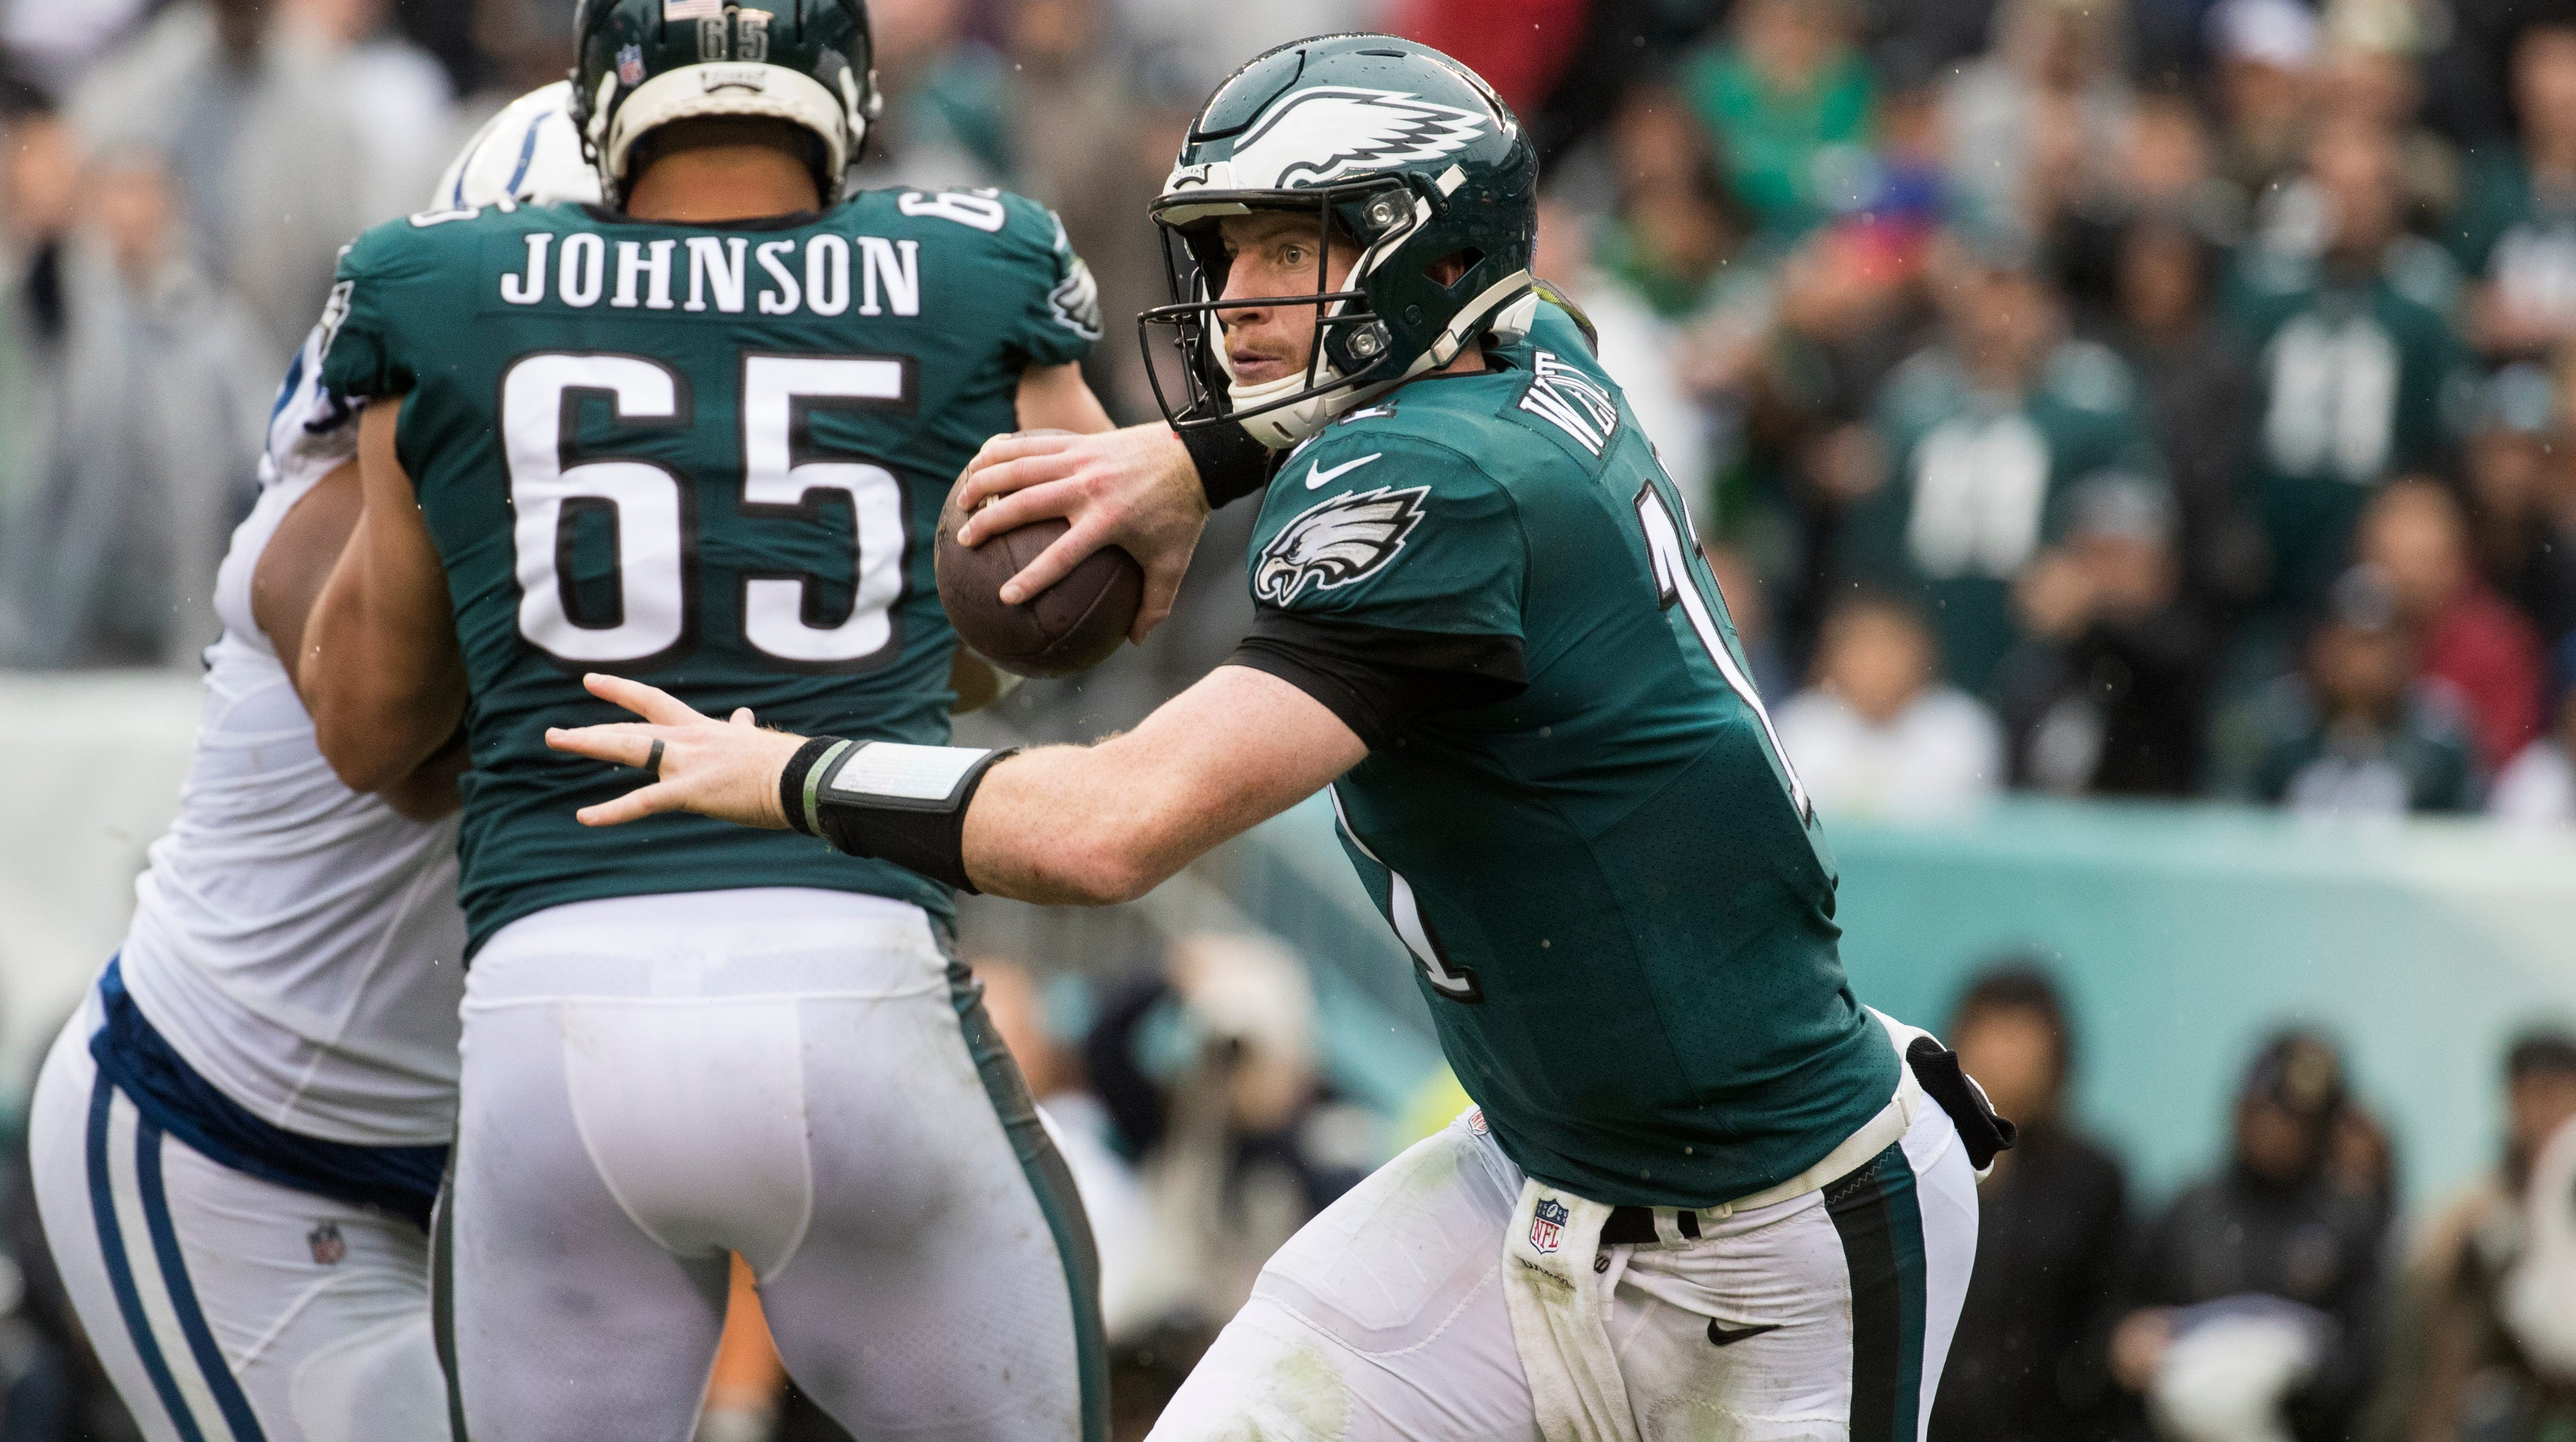 Alshon Jeffery could be returning as soon as next week, and Jay Ajayi and Darren Sproles will help make the Eagles offense whole again.